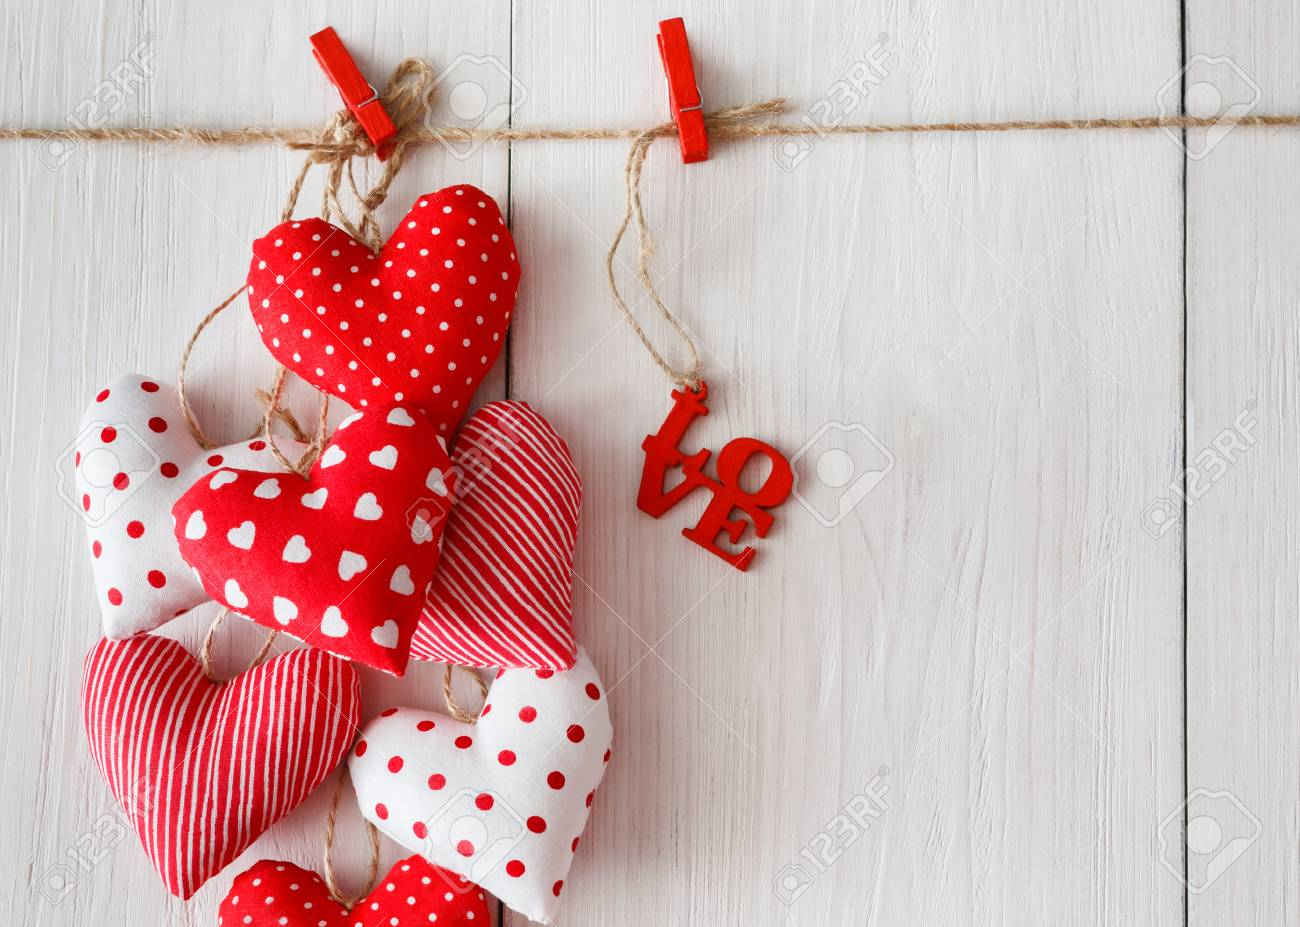 Valentine Background With Sewed Pillow Diy Handmade Hearts Bunch